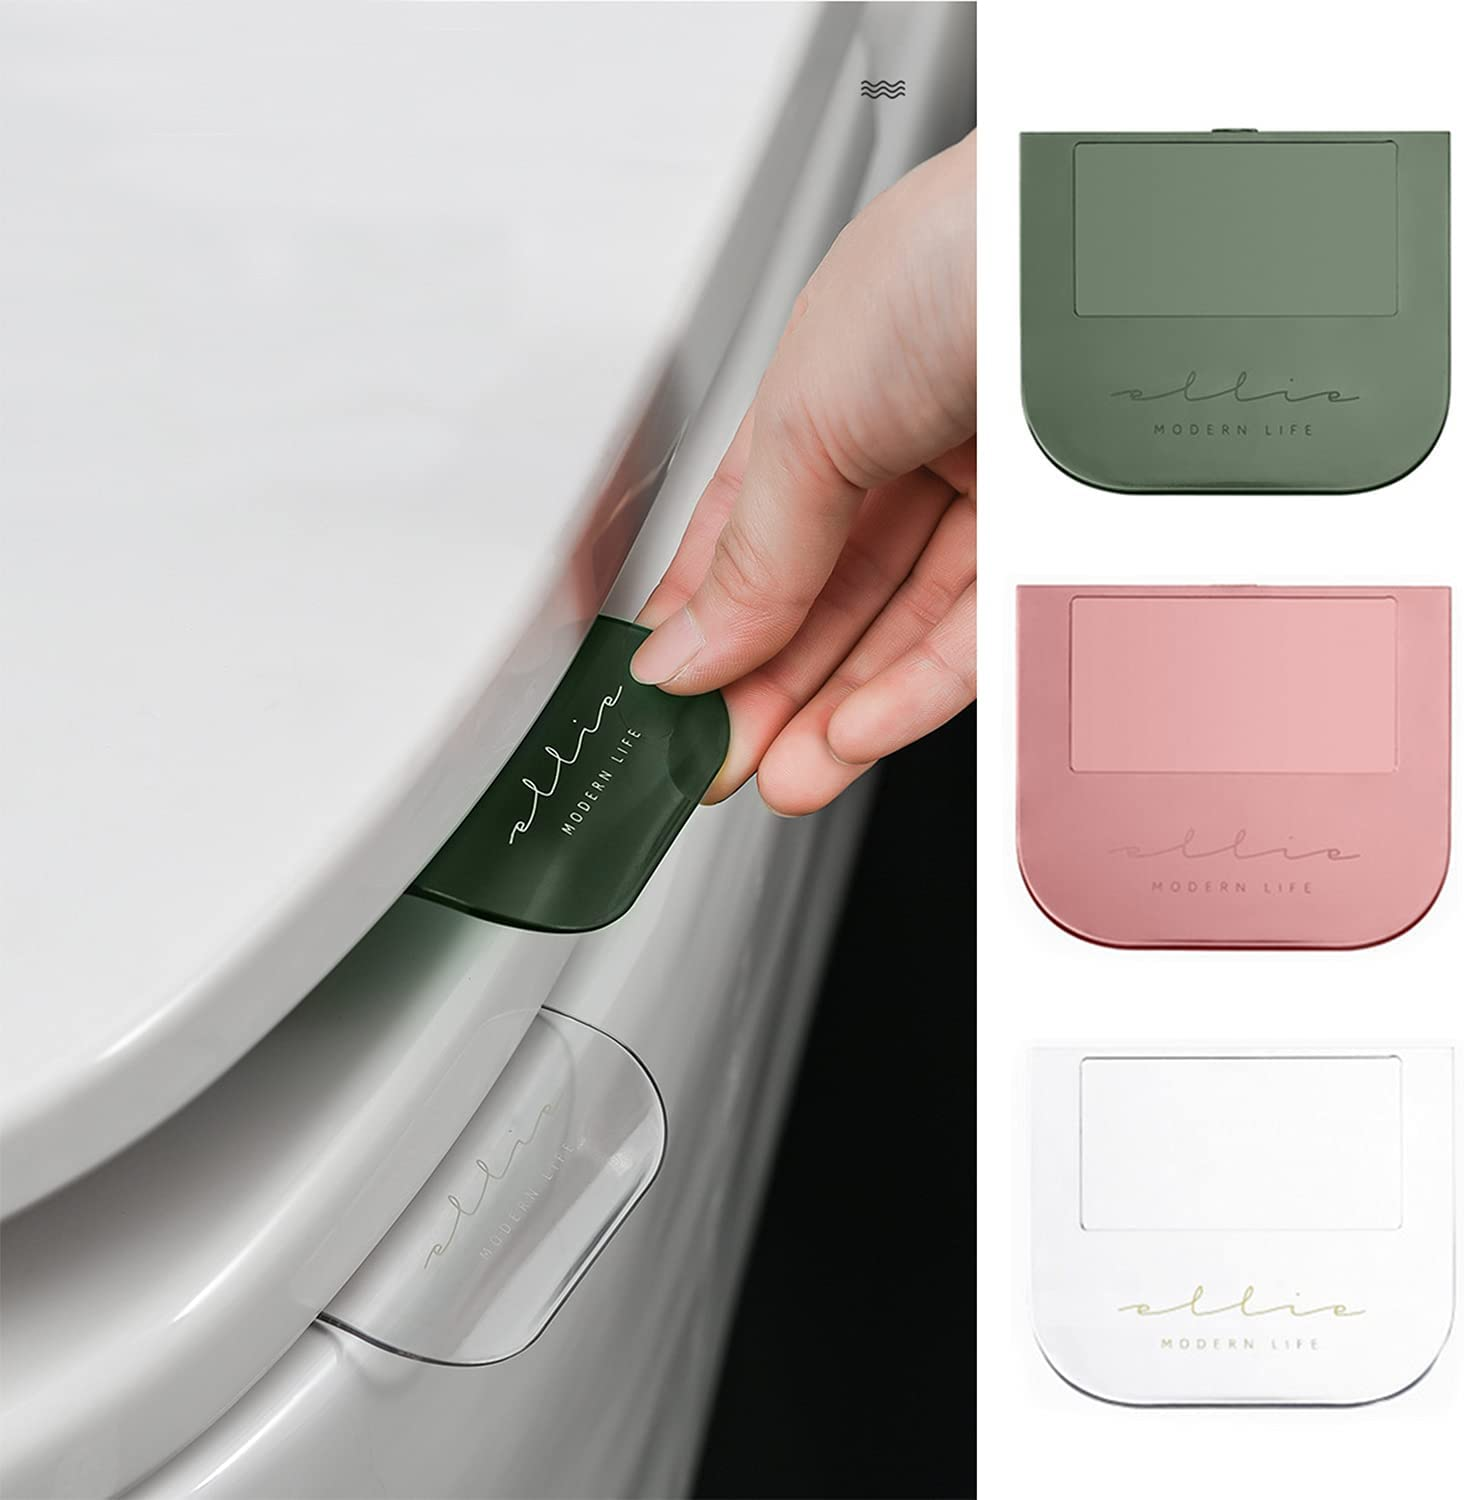 3Pcs Discount famous is also underway Toilet Seat Lifter Toi Lid Decals Handle